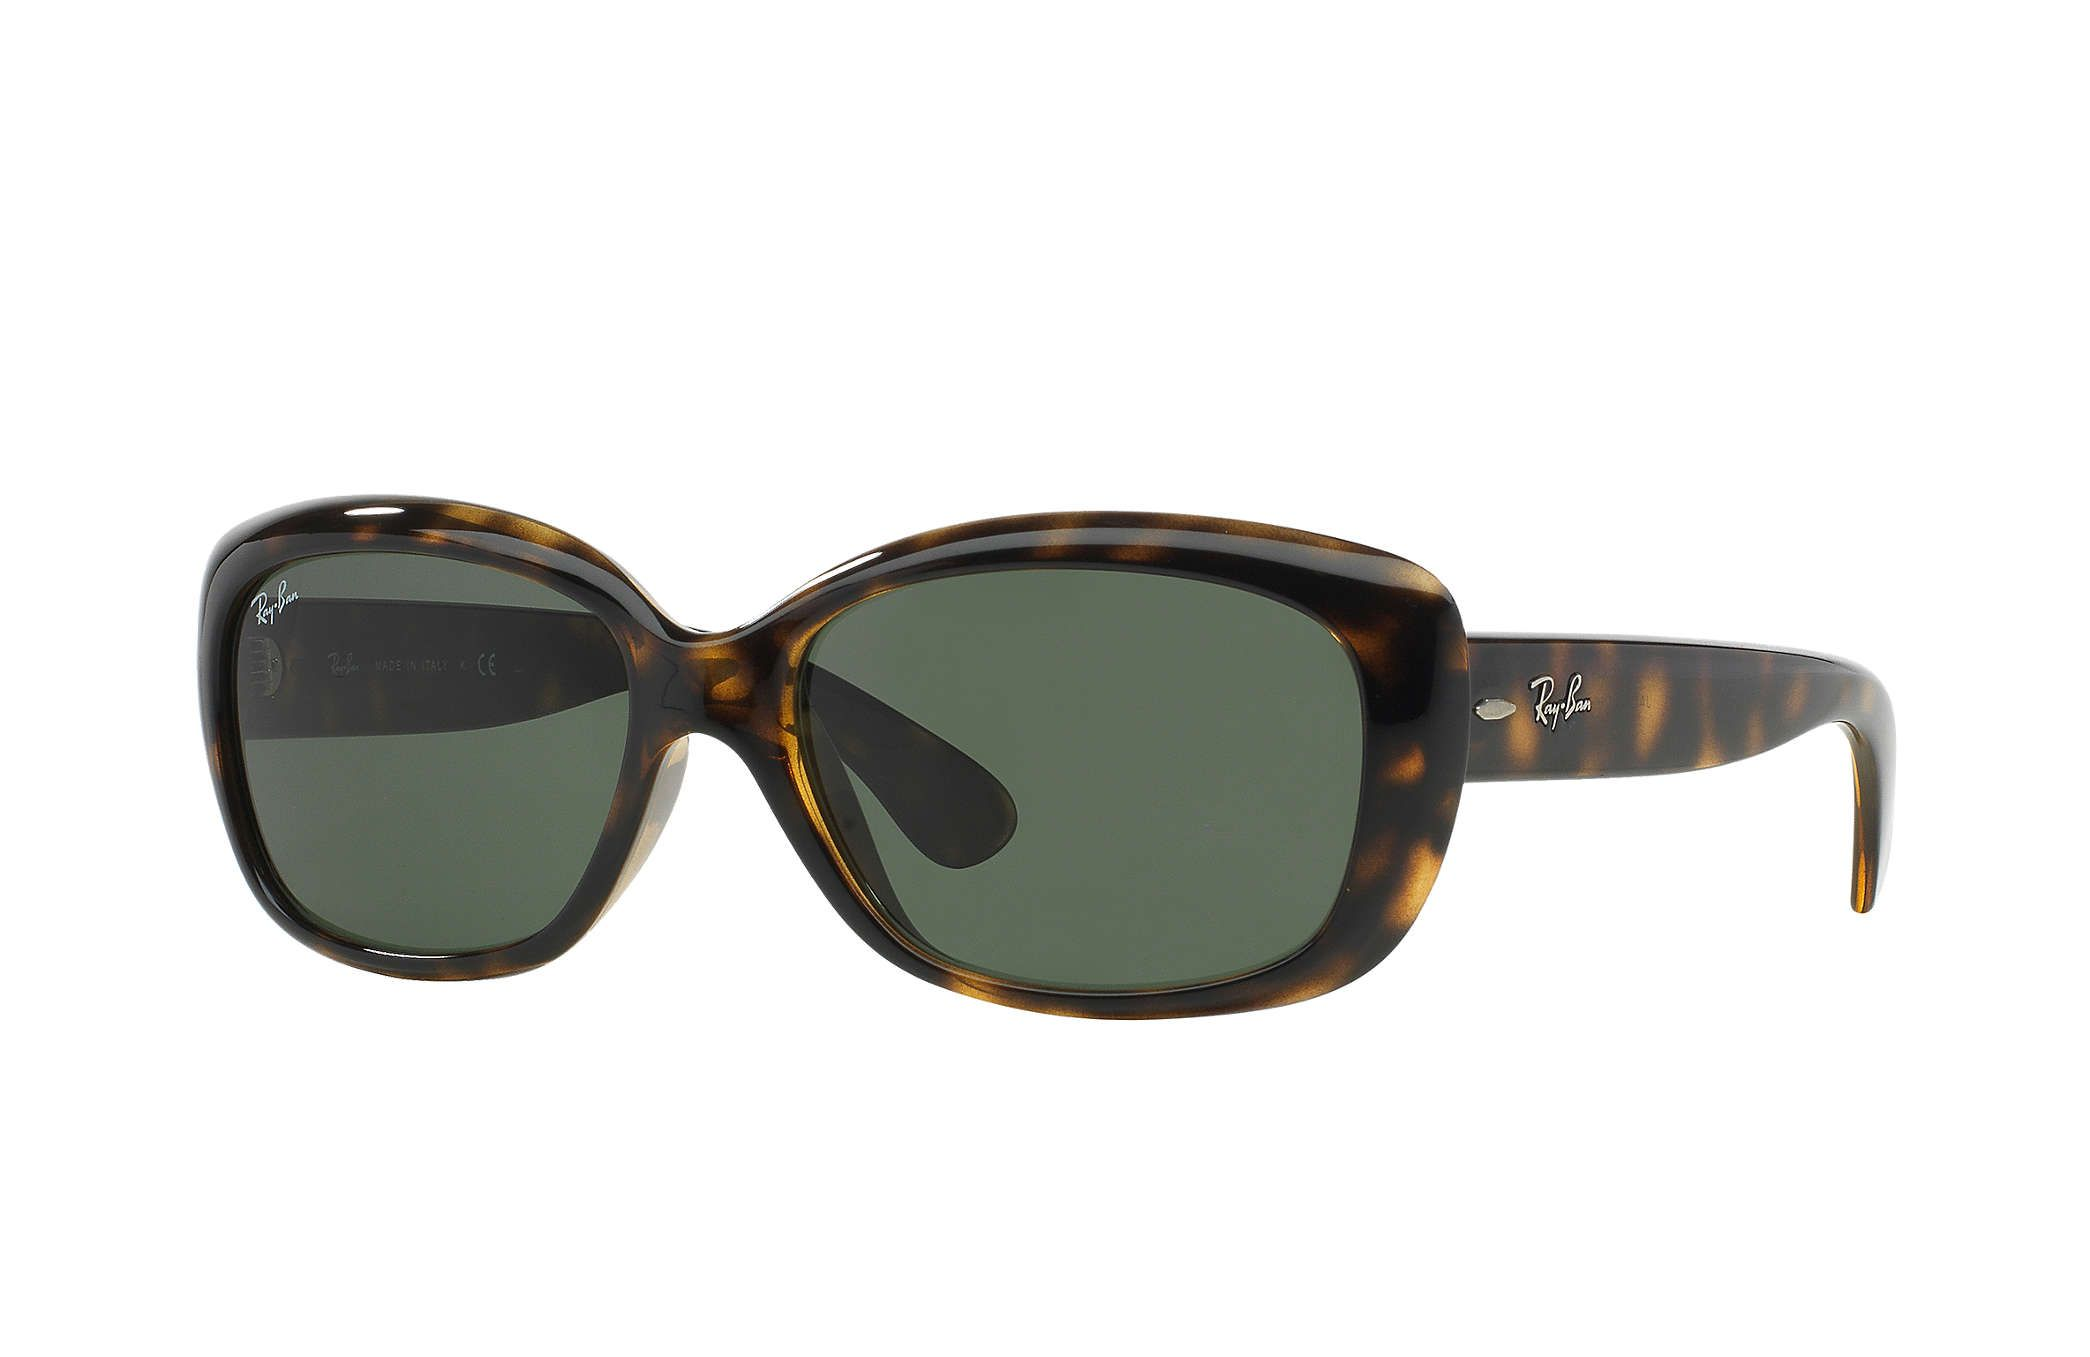 7c60bf5099d Ray-Ban 0RB4101-JACKIE OHH Tortoise SUN Ray Ban Donne